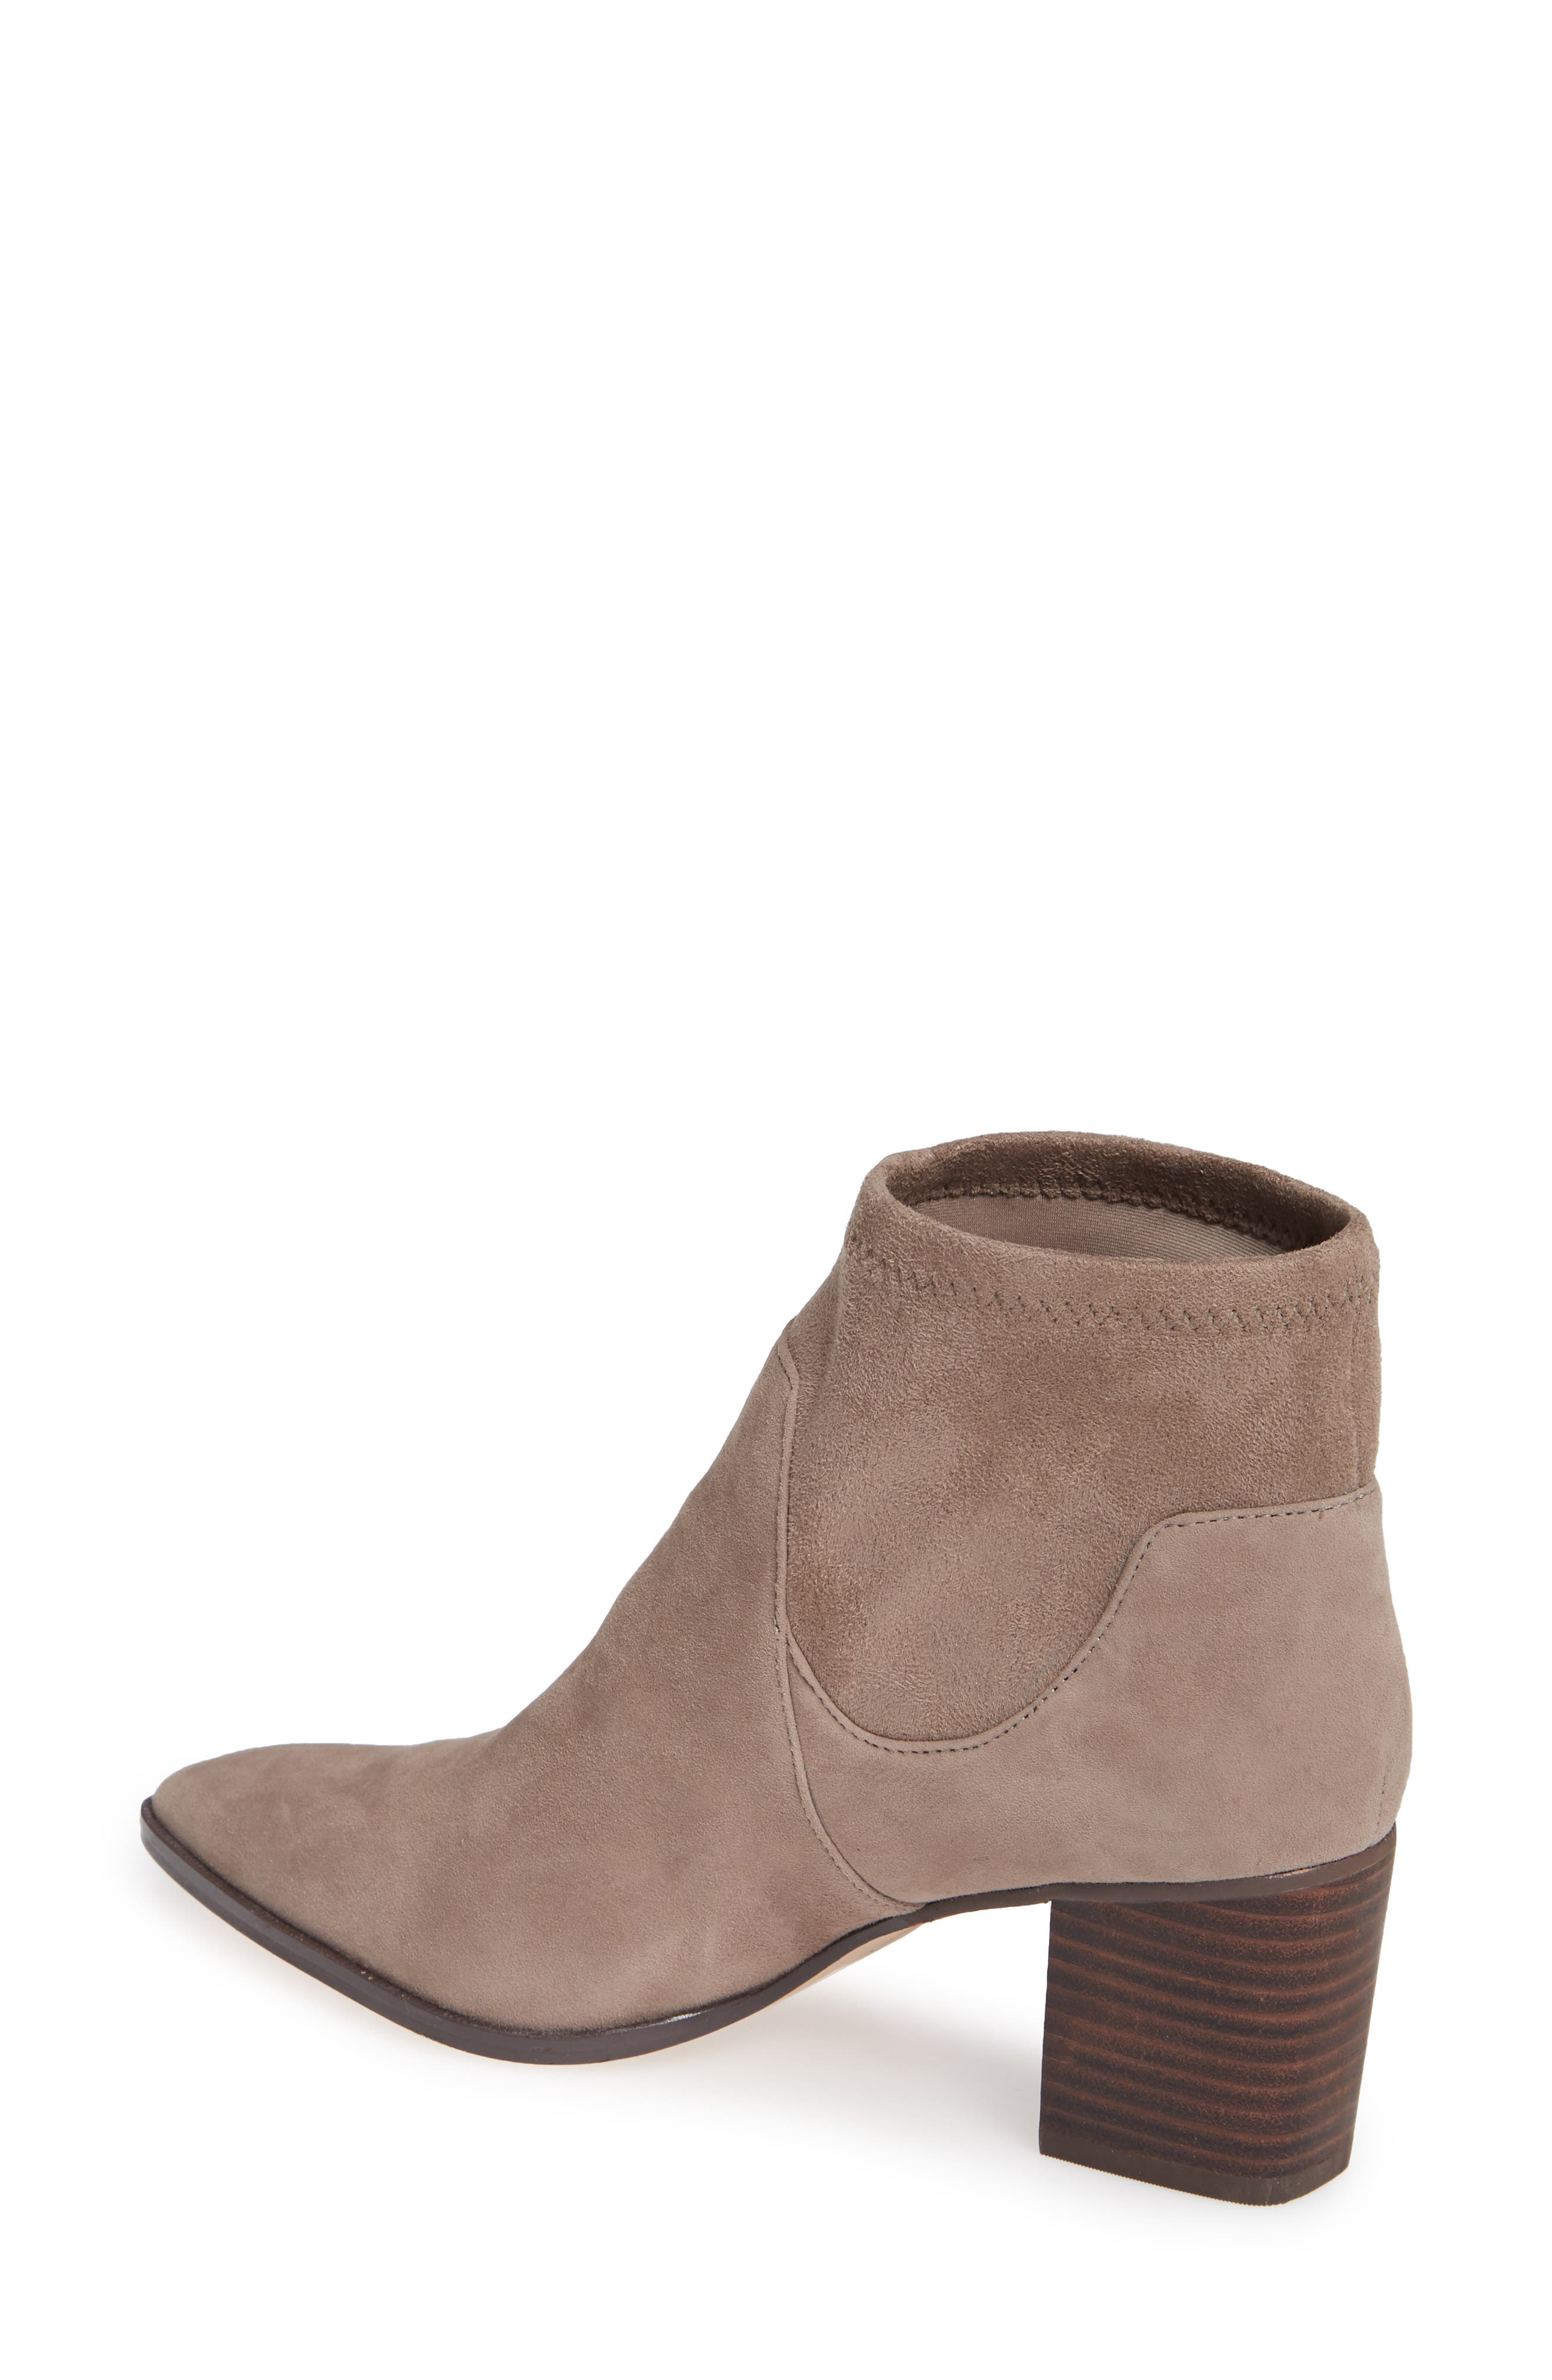 SOLE SOCIETY, Dawnina Bootie, Alternate thumbnail 2, color, PORCINI SUEDE